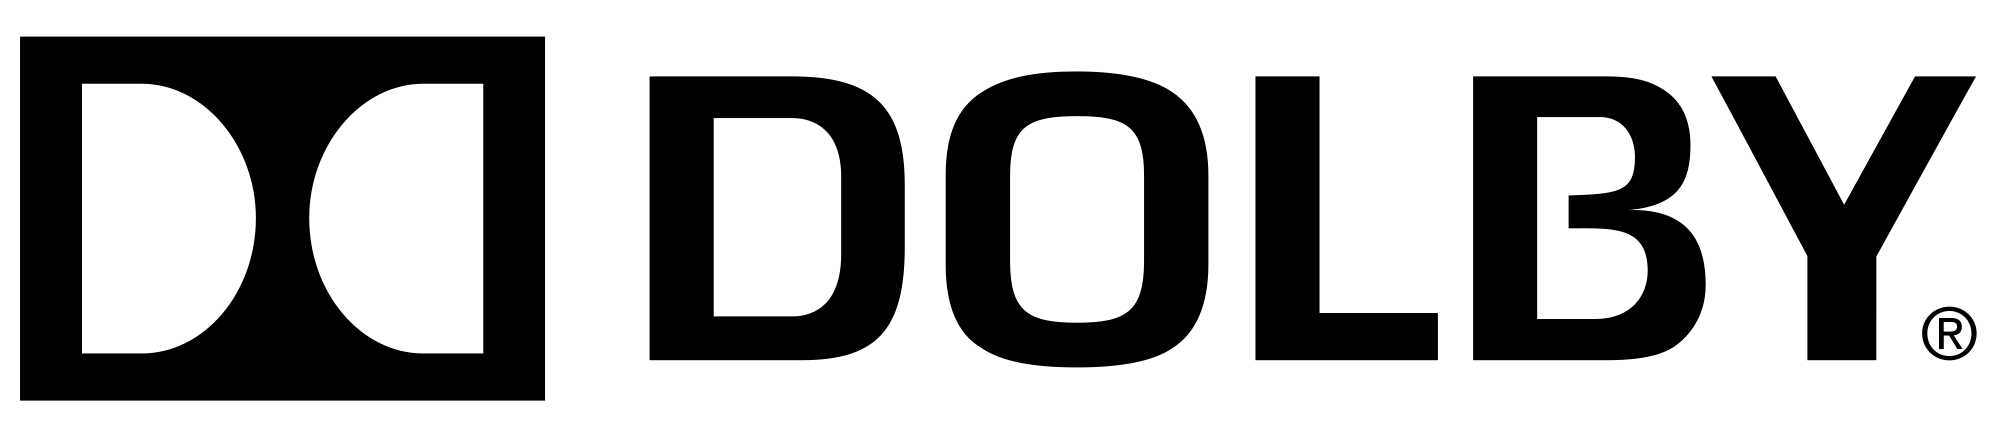 2000px-dolby-logo.png